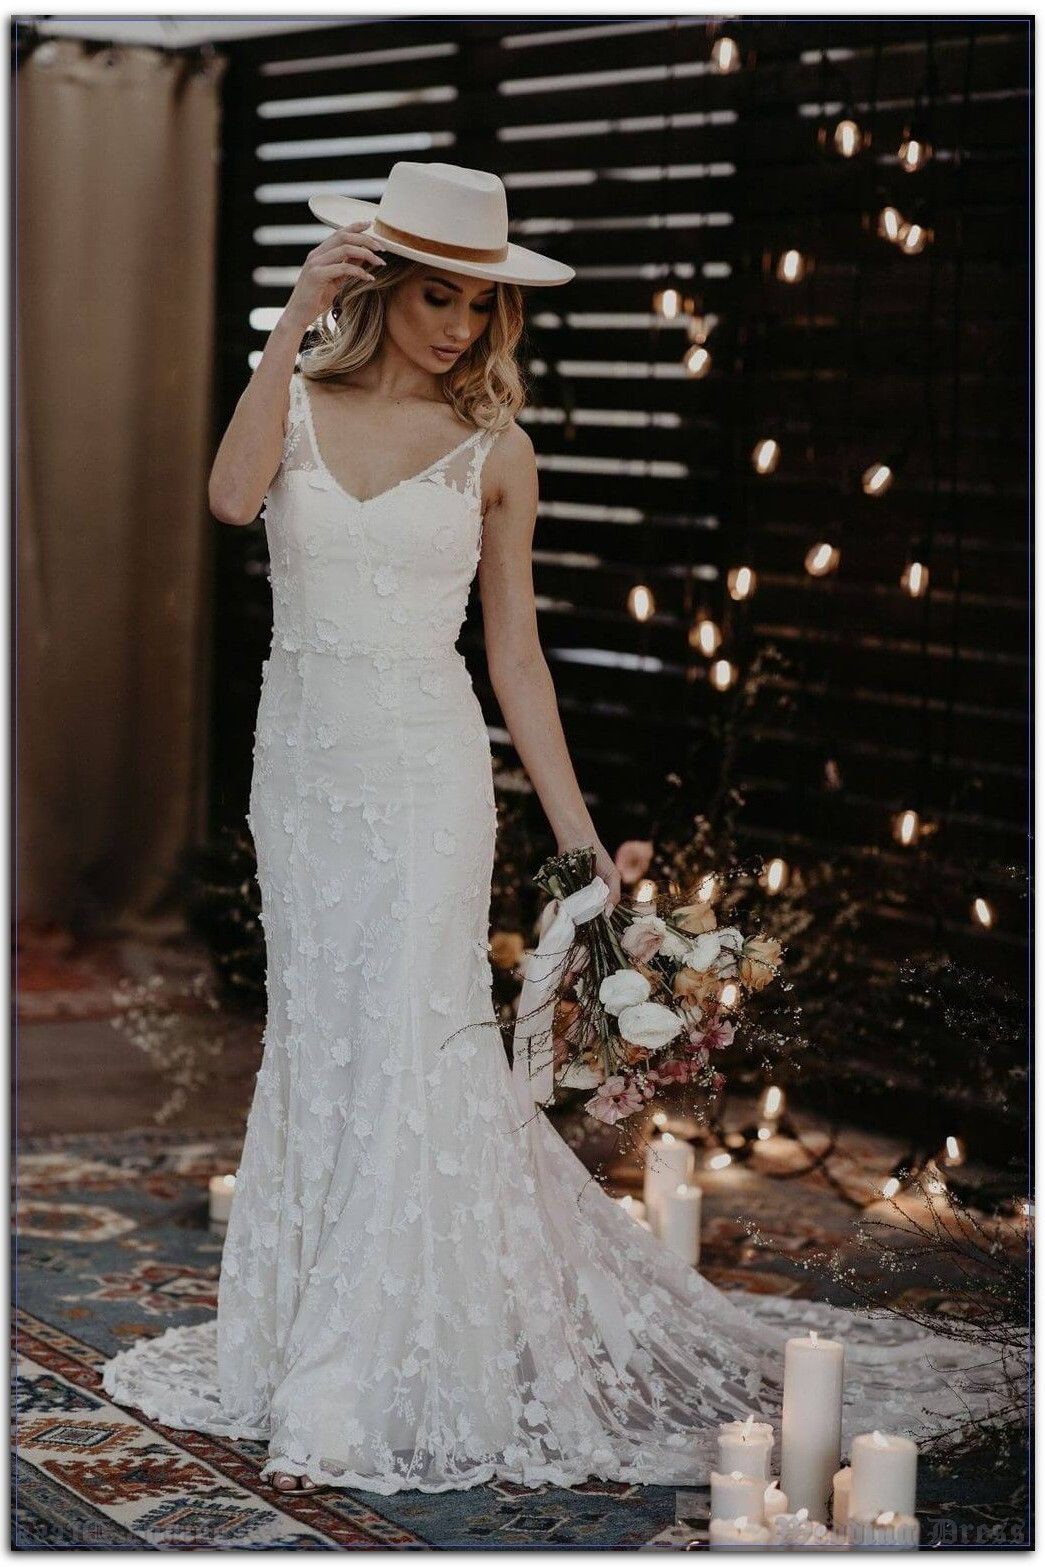 How To Get Discovered With Weddings Dress